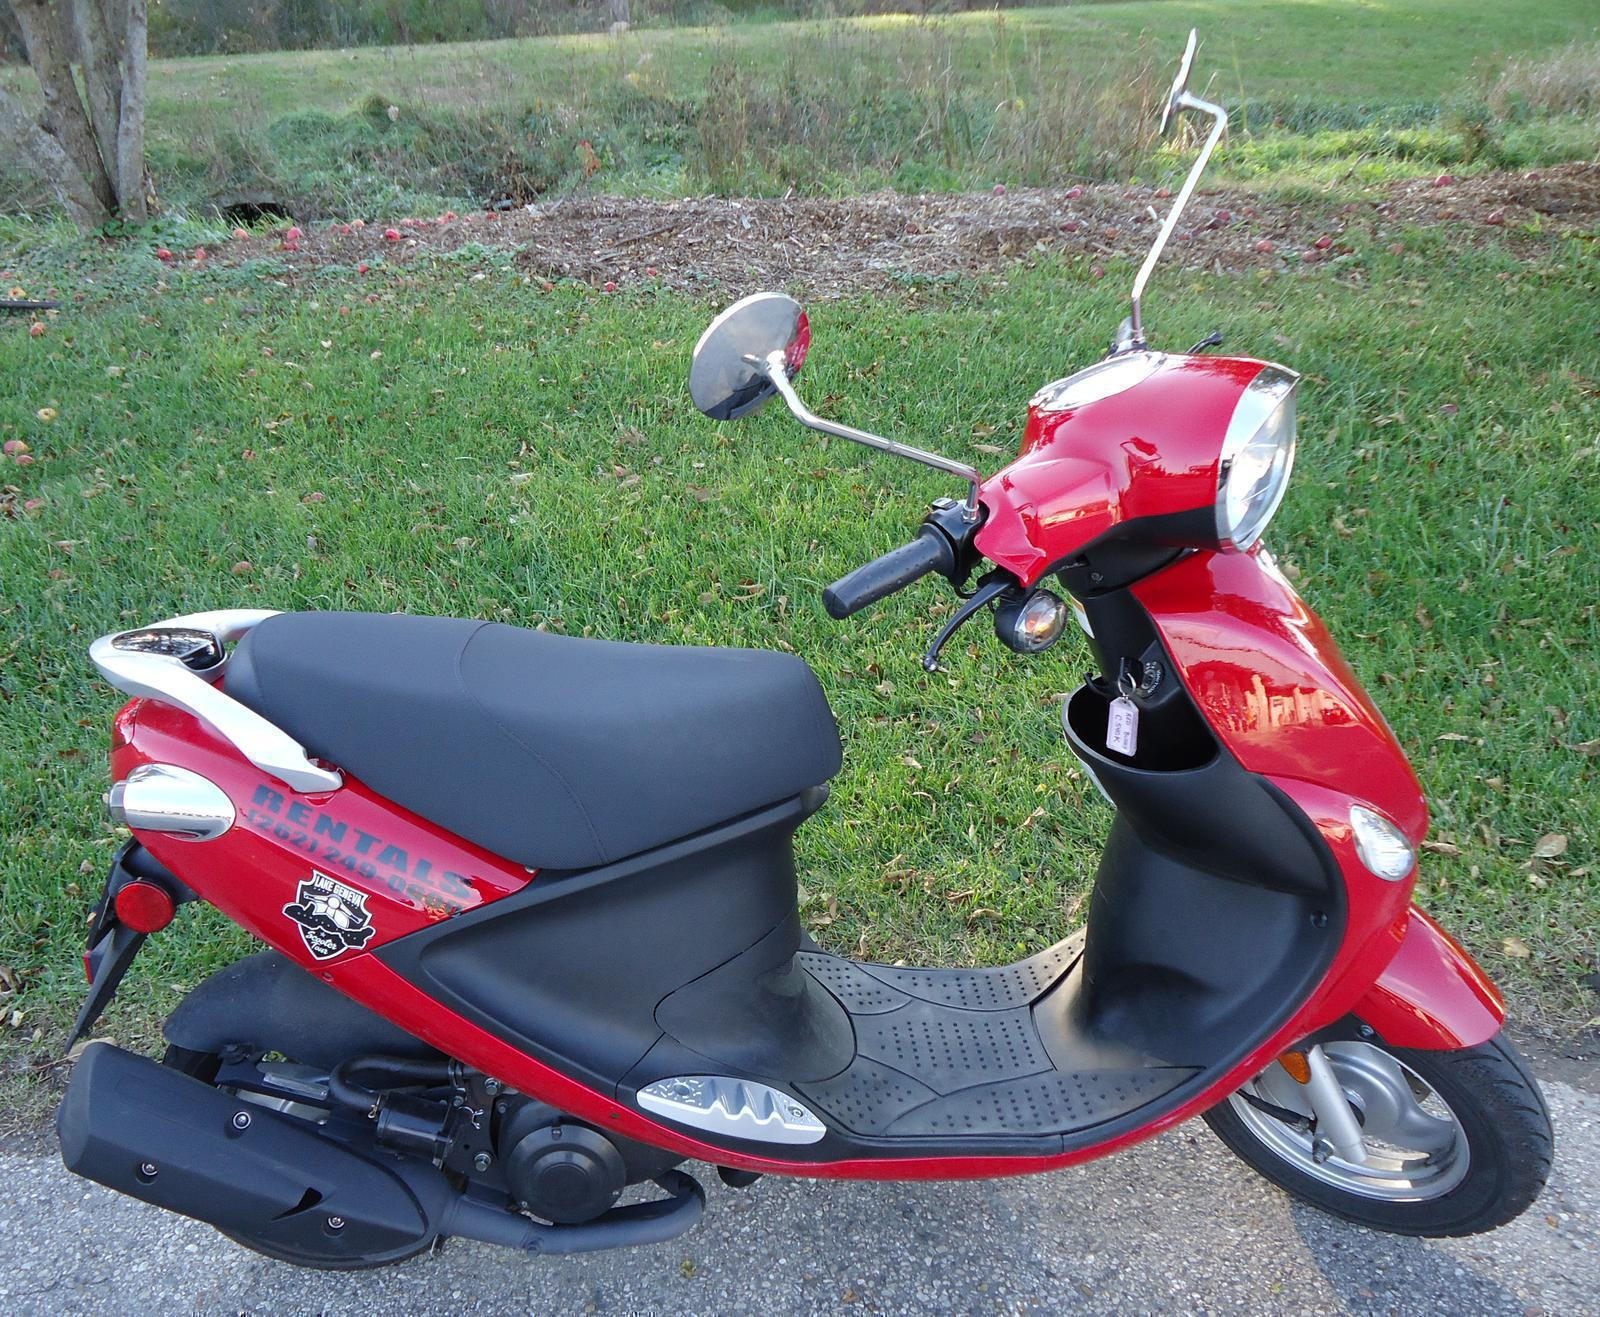 Midwest Action Cycle Offers Honda Kawasaki Suzuki Motorcycle Atv 5 Engine Parts Diagram 2018 Genuine Scooter Company Buddy 50